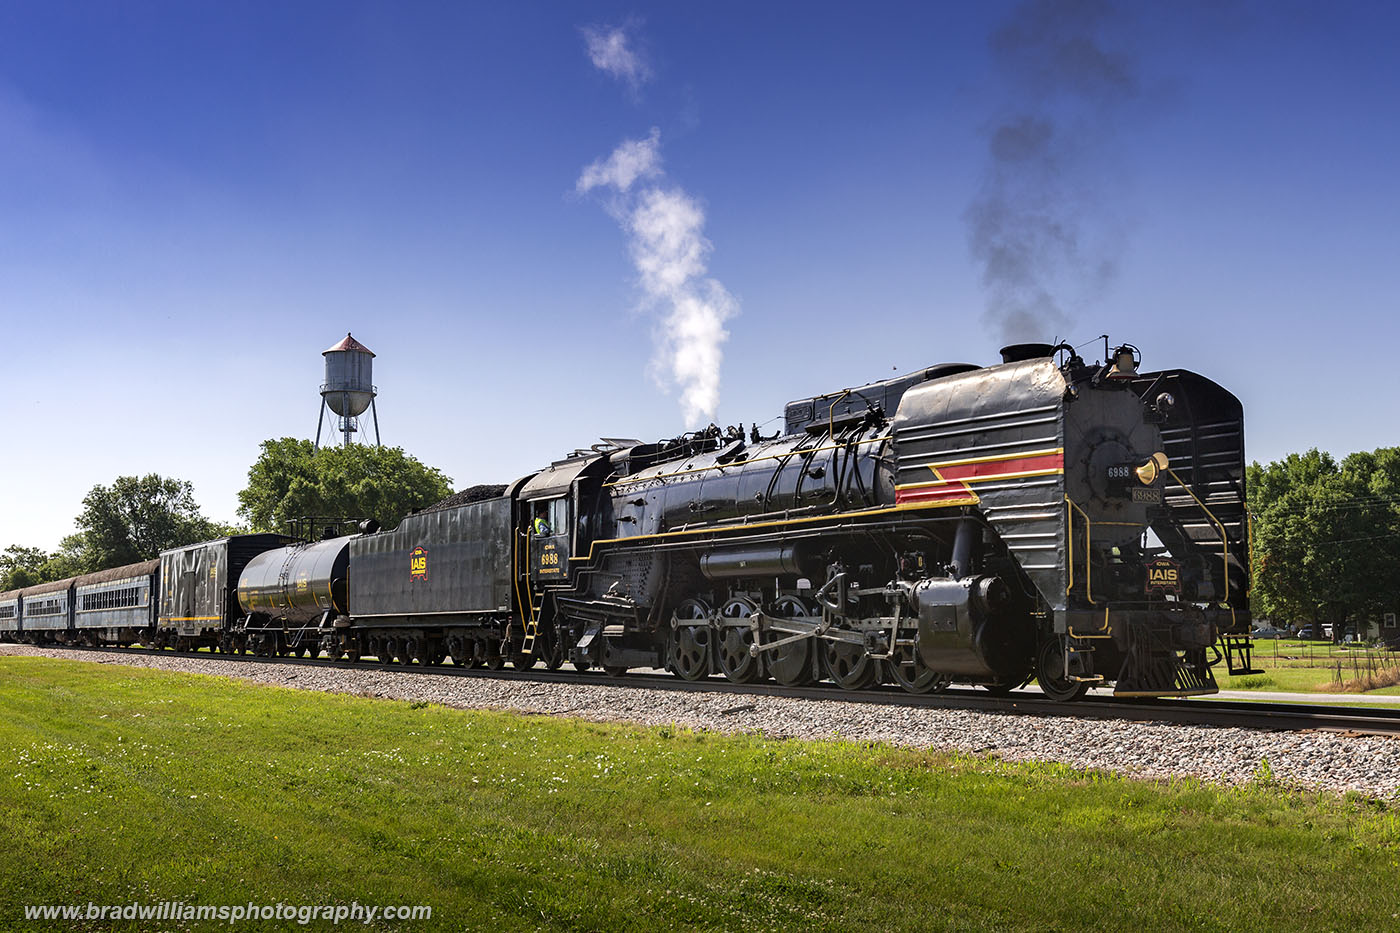 IAIS 6988 laying over in Menlo, Iowa after the first run of the day.  The layover was to allow for everyone to attend the Menlo...